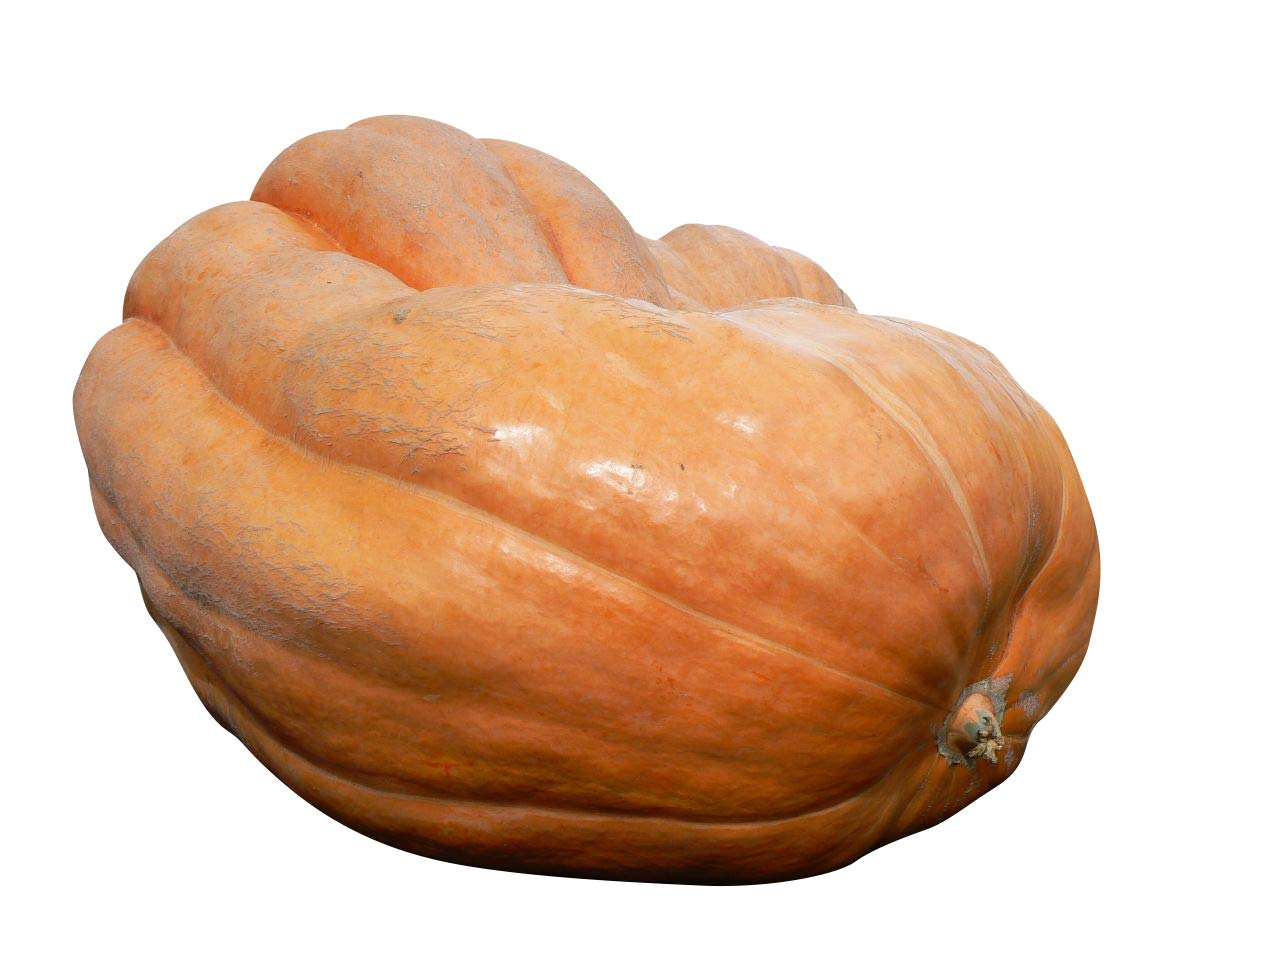 8 x Pumpkin Dills Atlantic Giant Finest Seeds -Seeds from 60-75 kg Atlantic Giant-